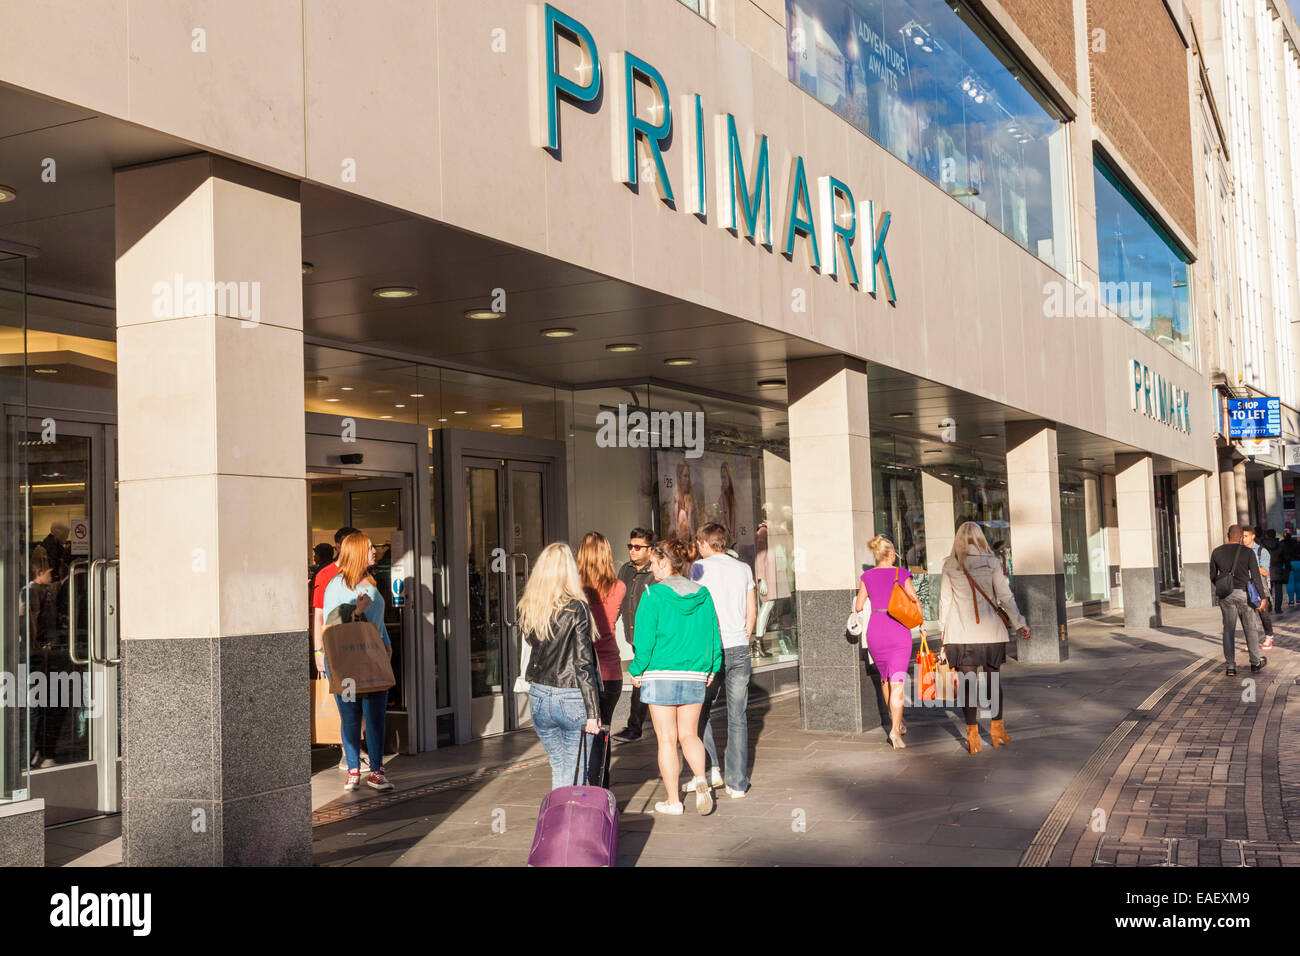 Where are the Primark stores in England?